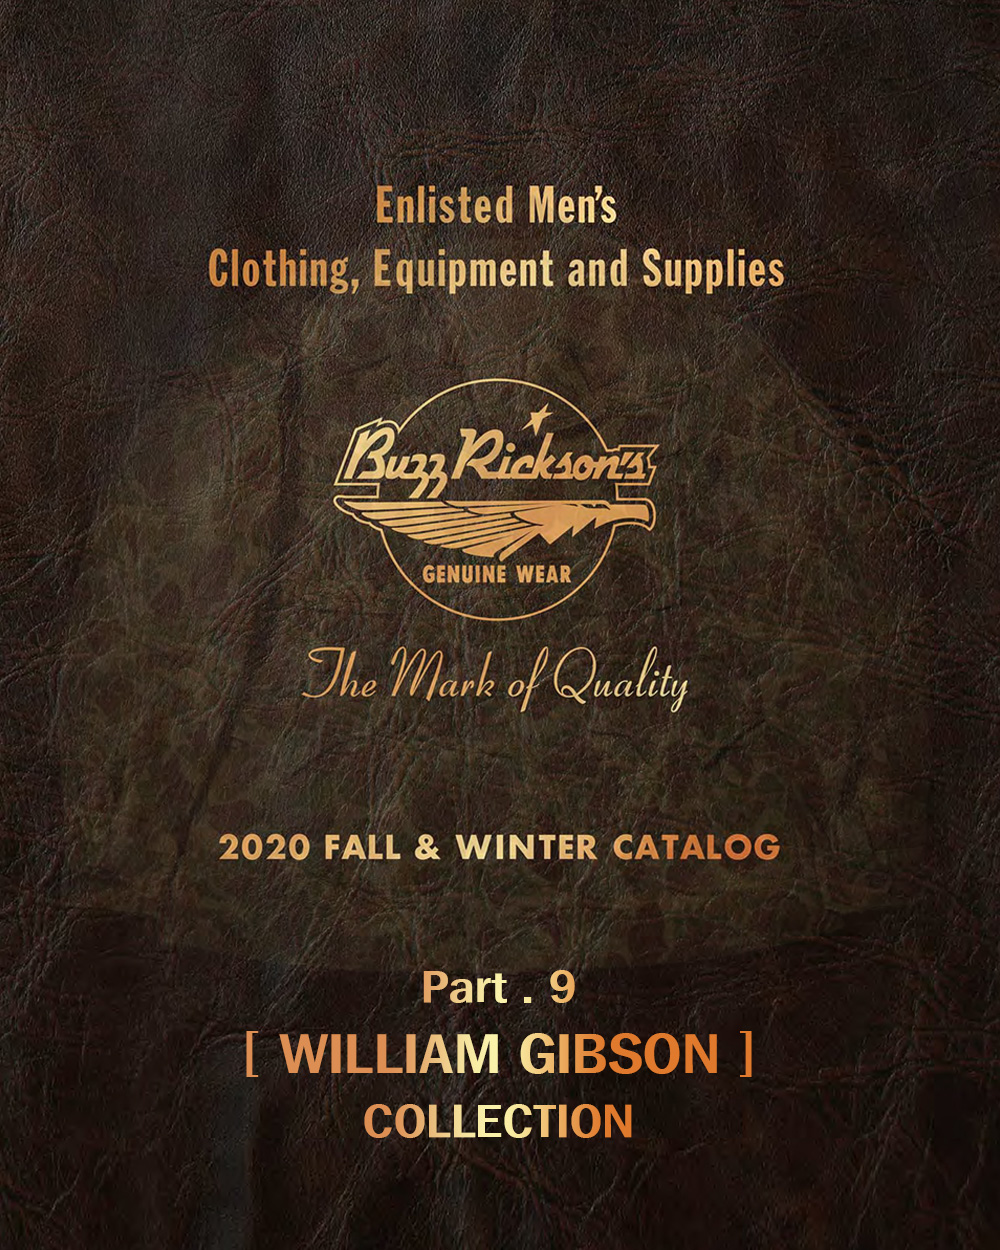 20FW BUZZRICKSONS WILLIAM GIBSON COLLECTION (PART.9)